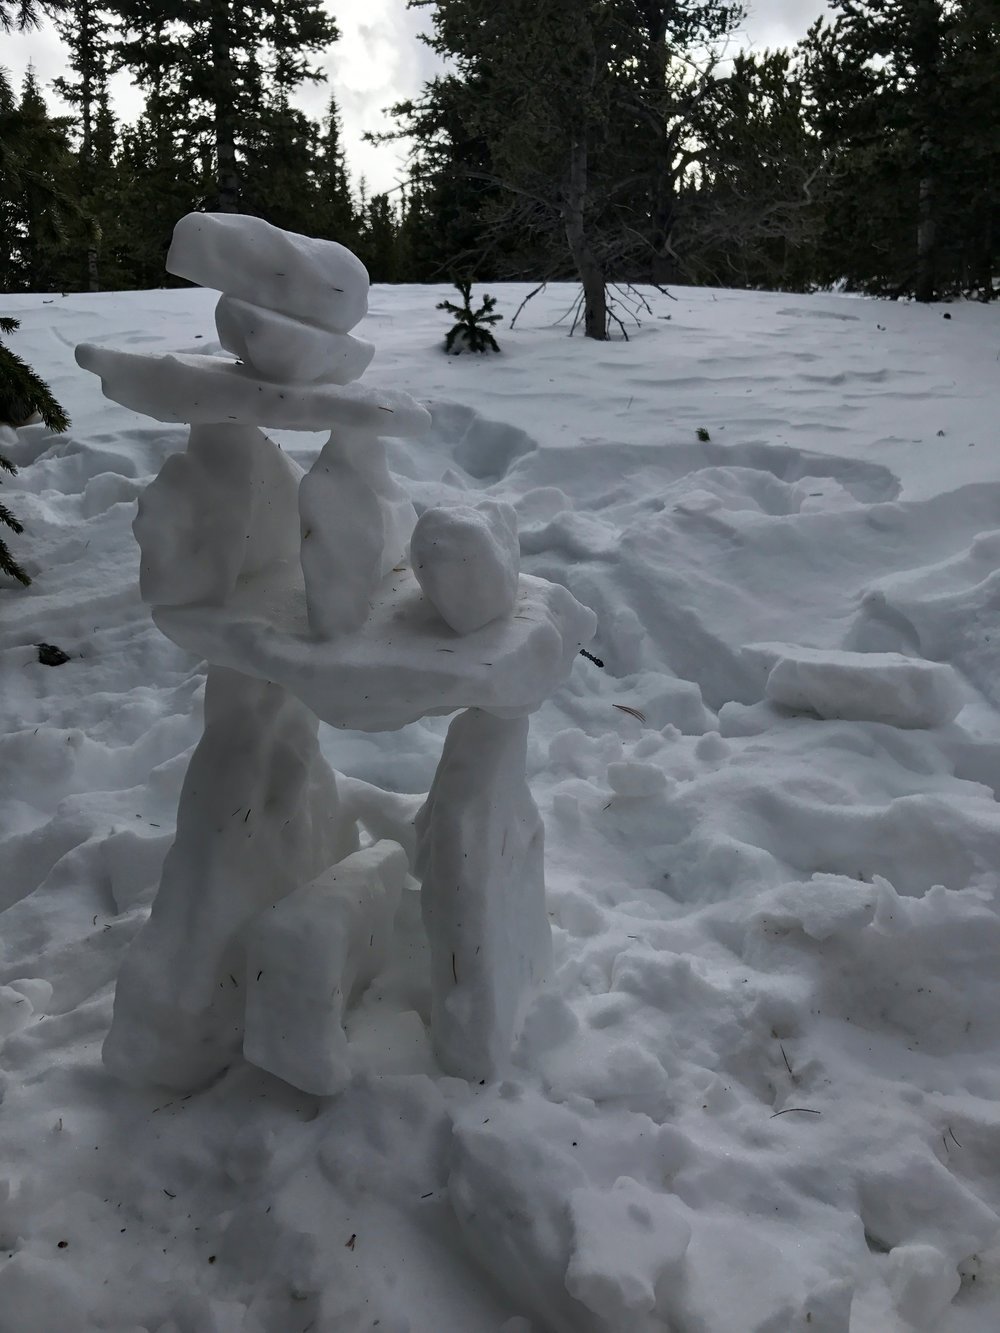 Snow sculpture along the trail.